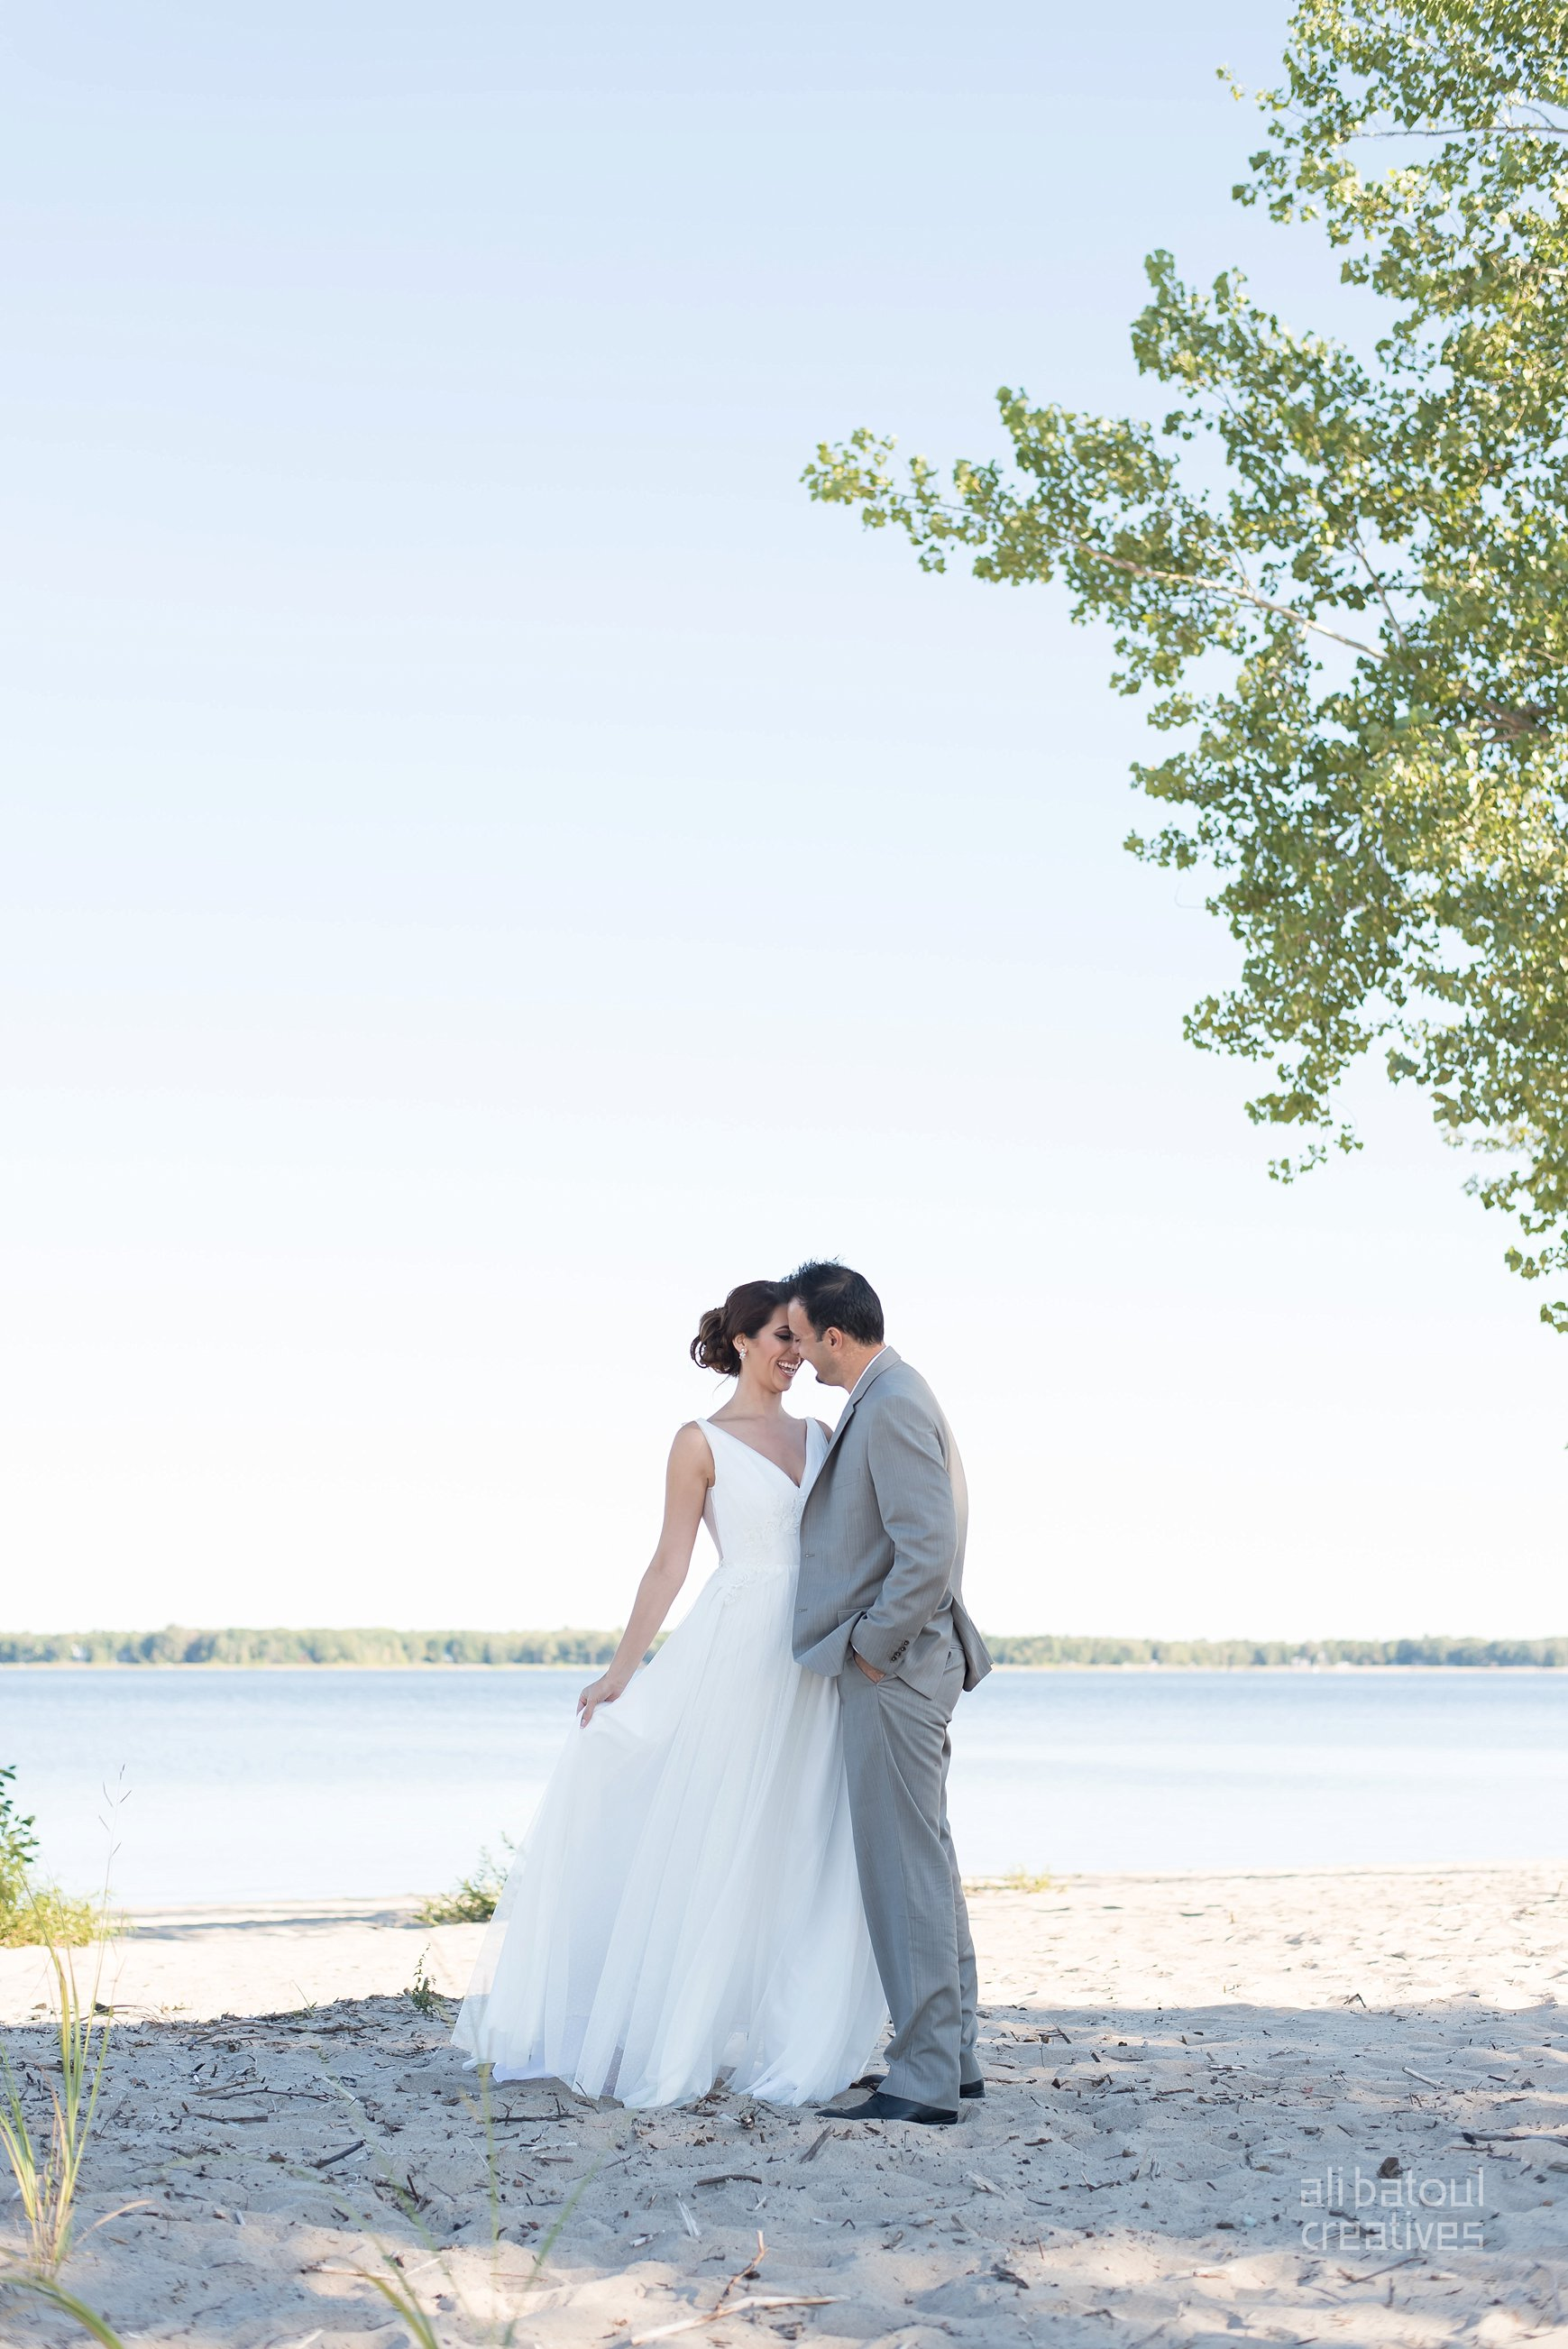 Alaa + Jad - Ottawa Beach Bridal Shoot (Ali Batoul Creatives)-17_Stomped.jpg